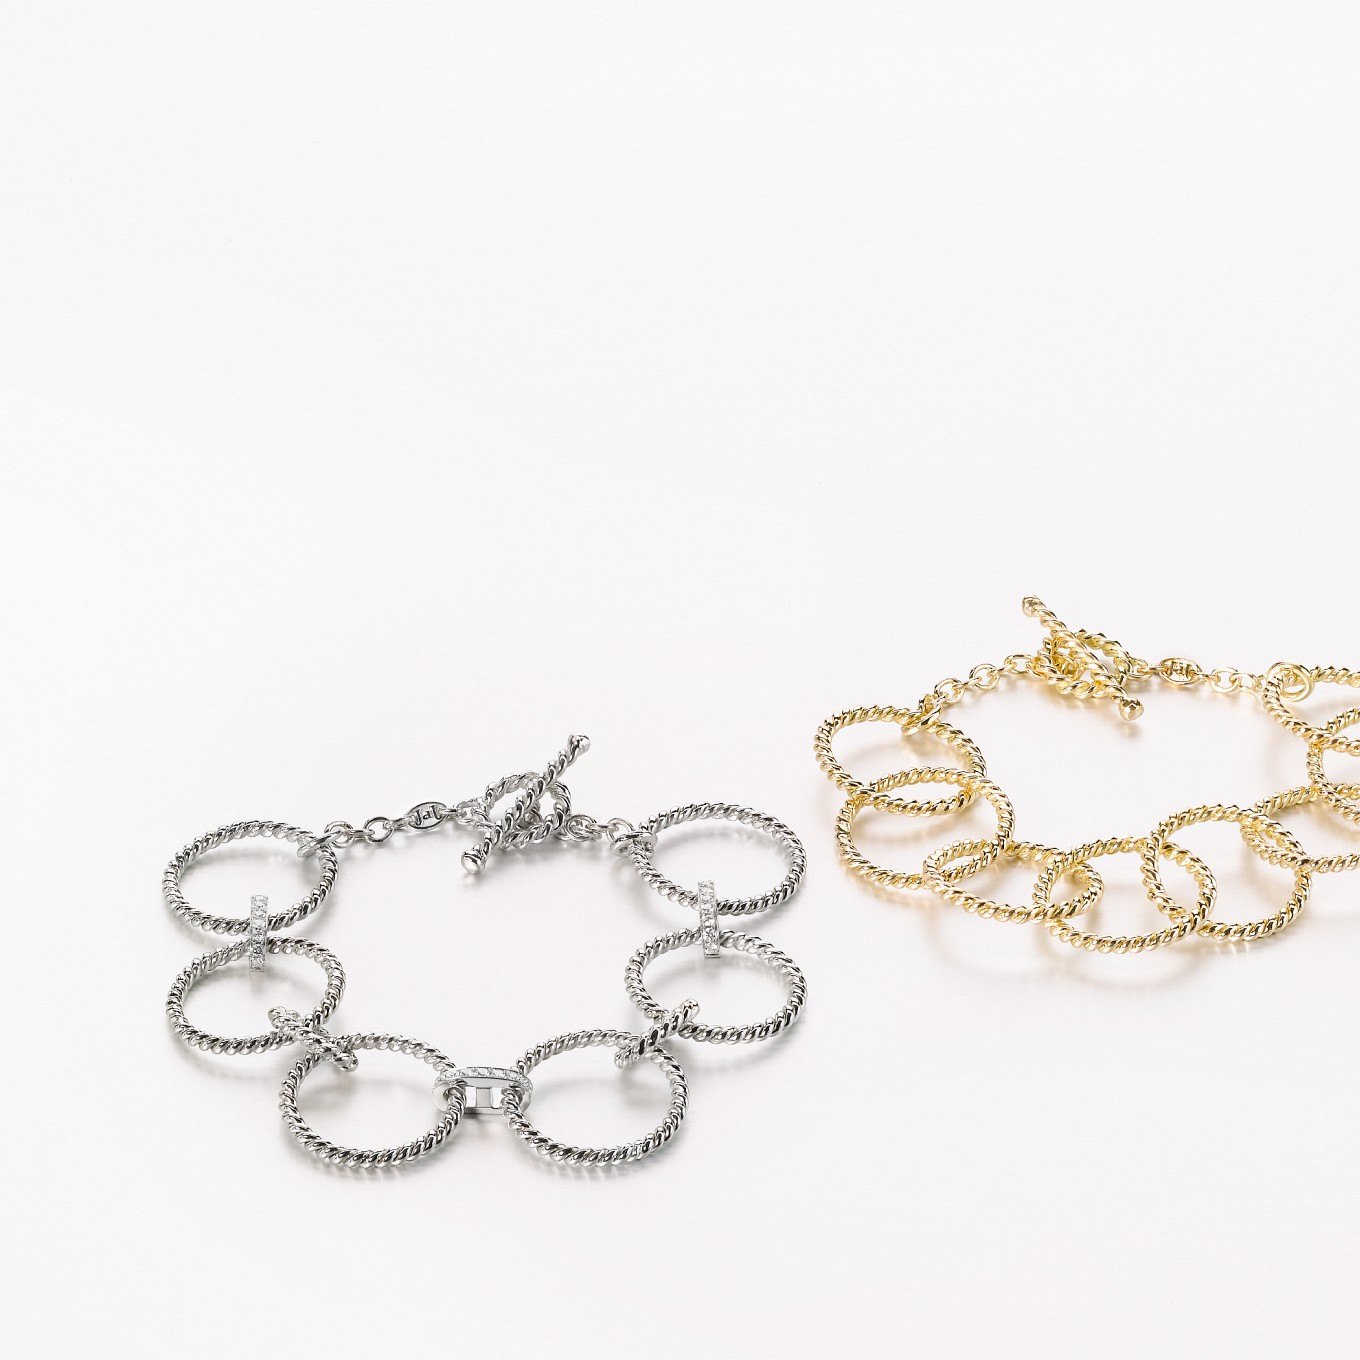 'EQUUS'  BRAID BRACELET IN WHITE GOLD WITH DIAMOND LINKS. 'EQUUS'  BRAID BRACELET IN YELLOW GOLD